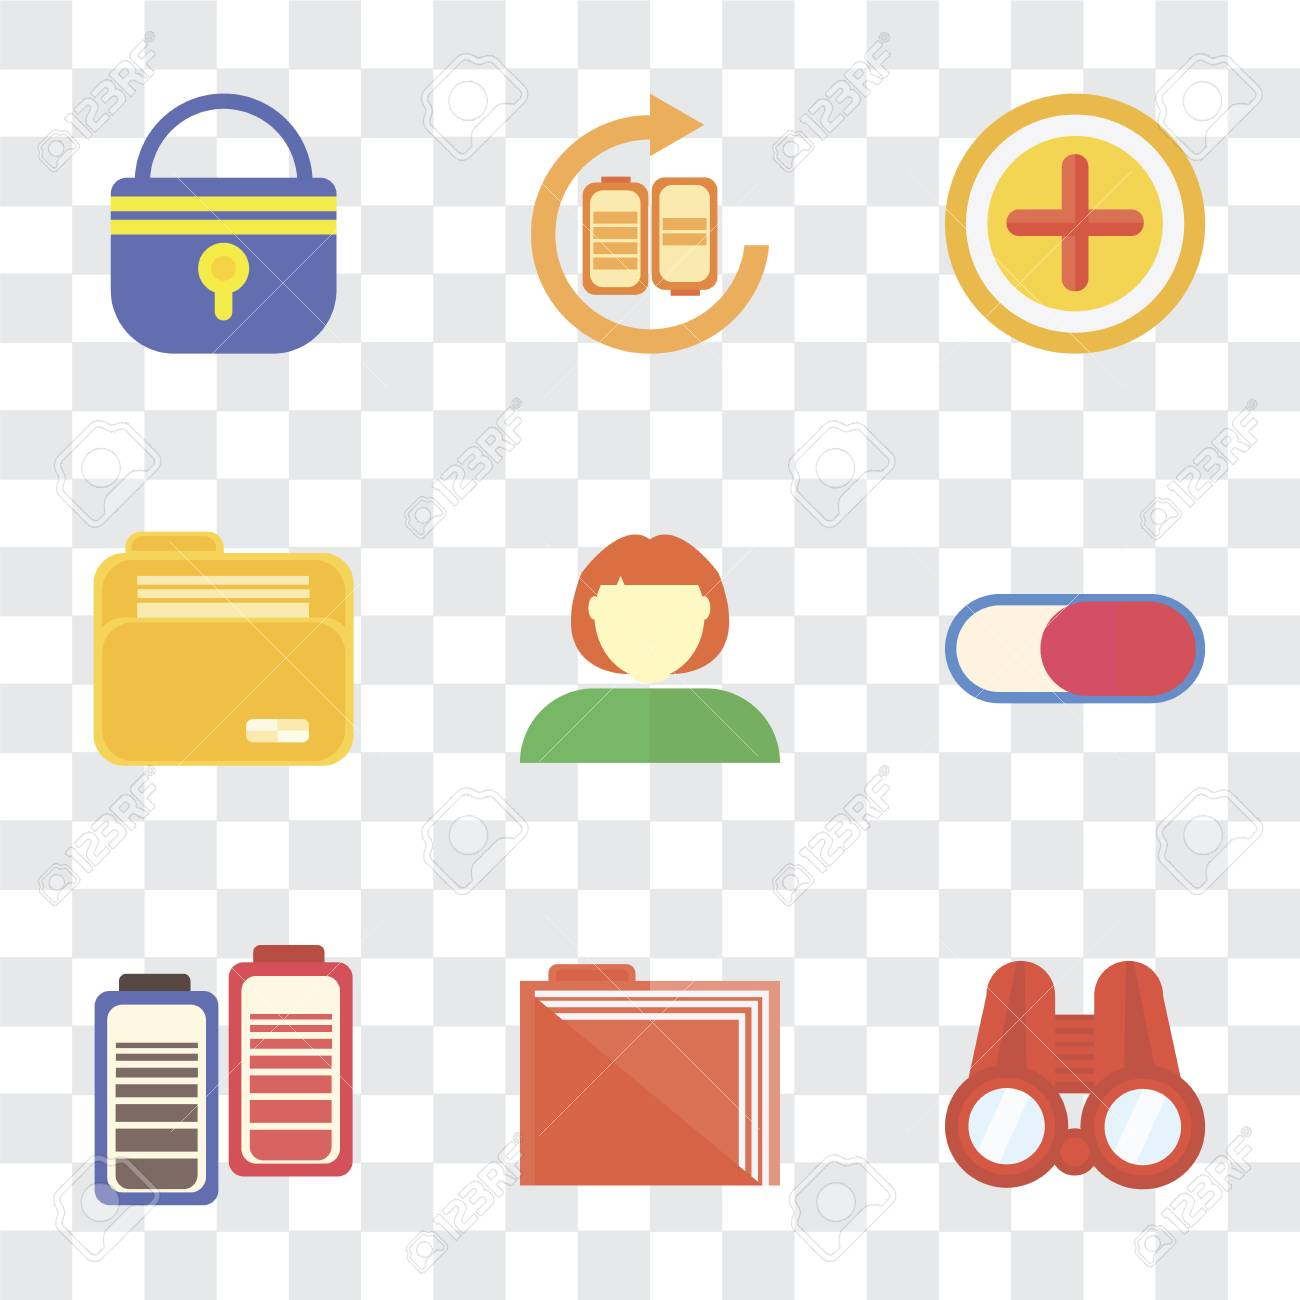 Set Of 9 simple transparency icons such as Binoculars, Folder, Battery,  Switch, User, Add, Locked, can be used for mobile, pixel perfect vector  icon